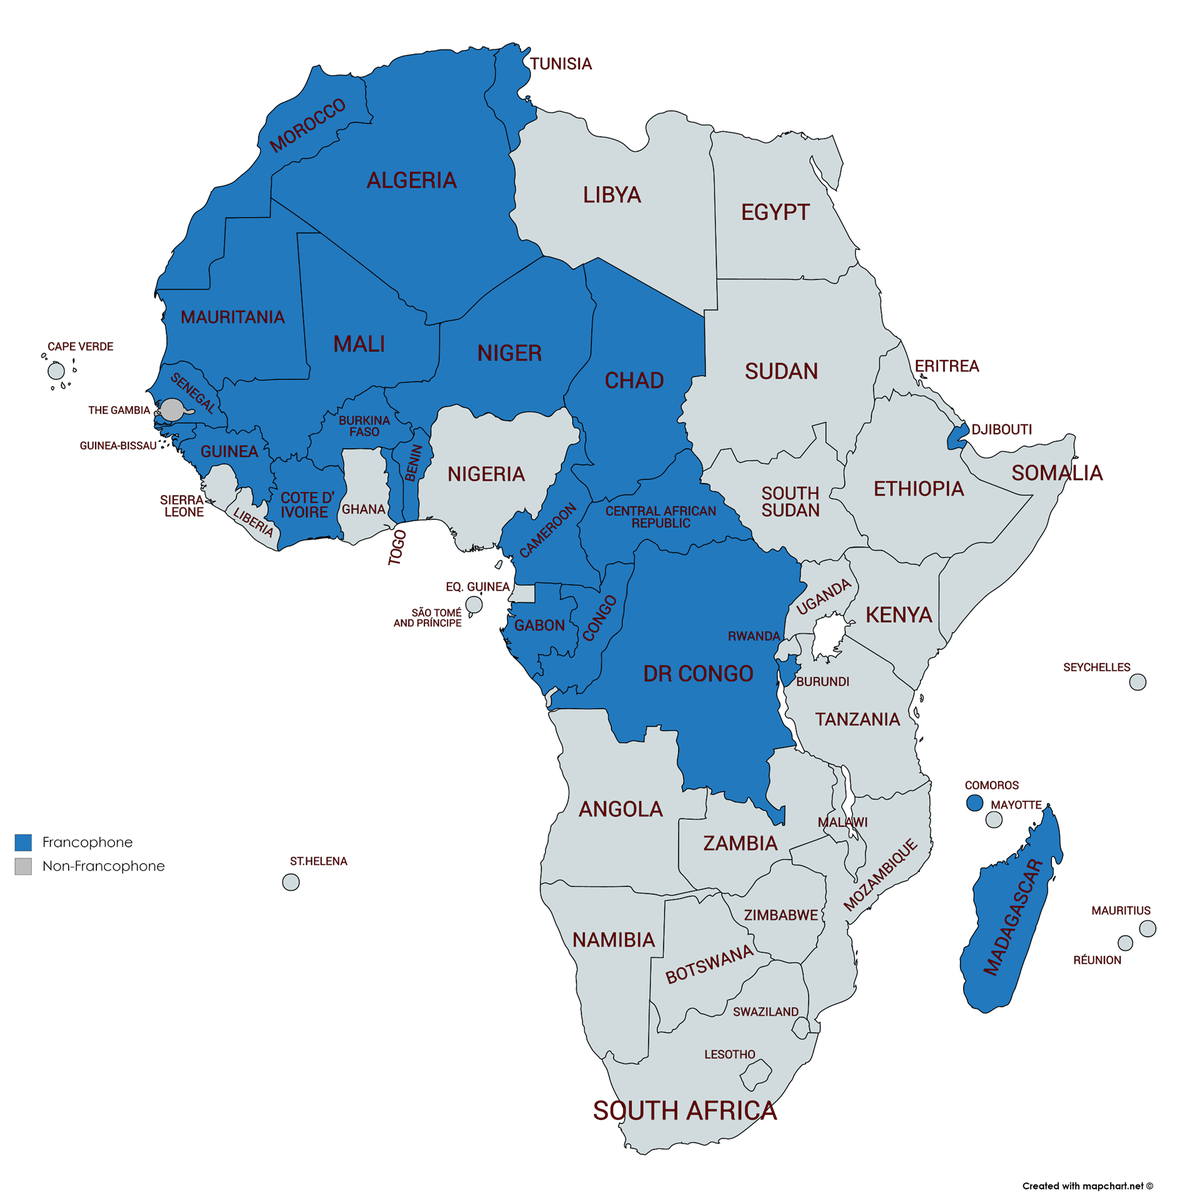 Map Of Africa French.Africadigest On Twitter Yes It S True France Does Own And